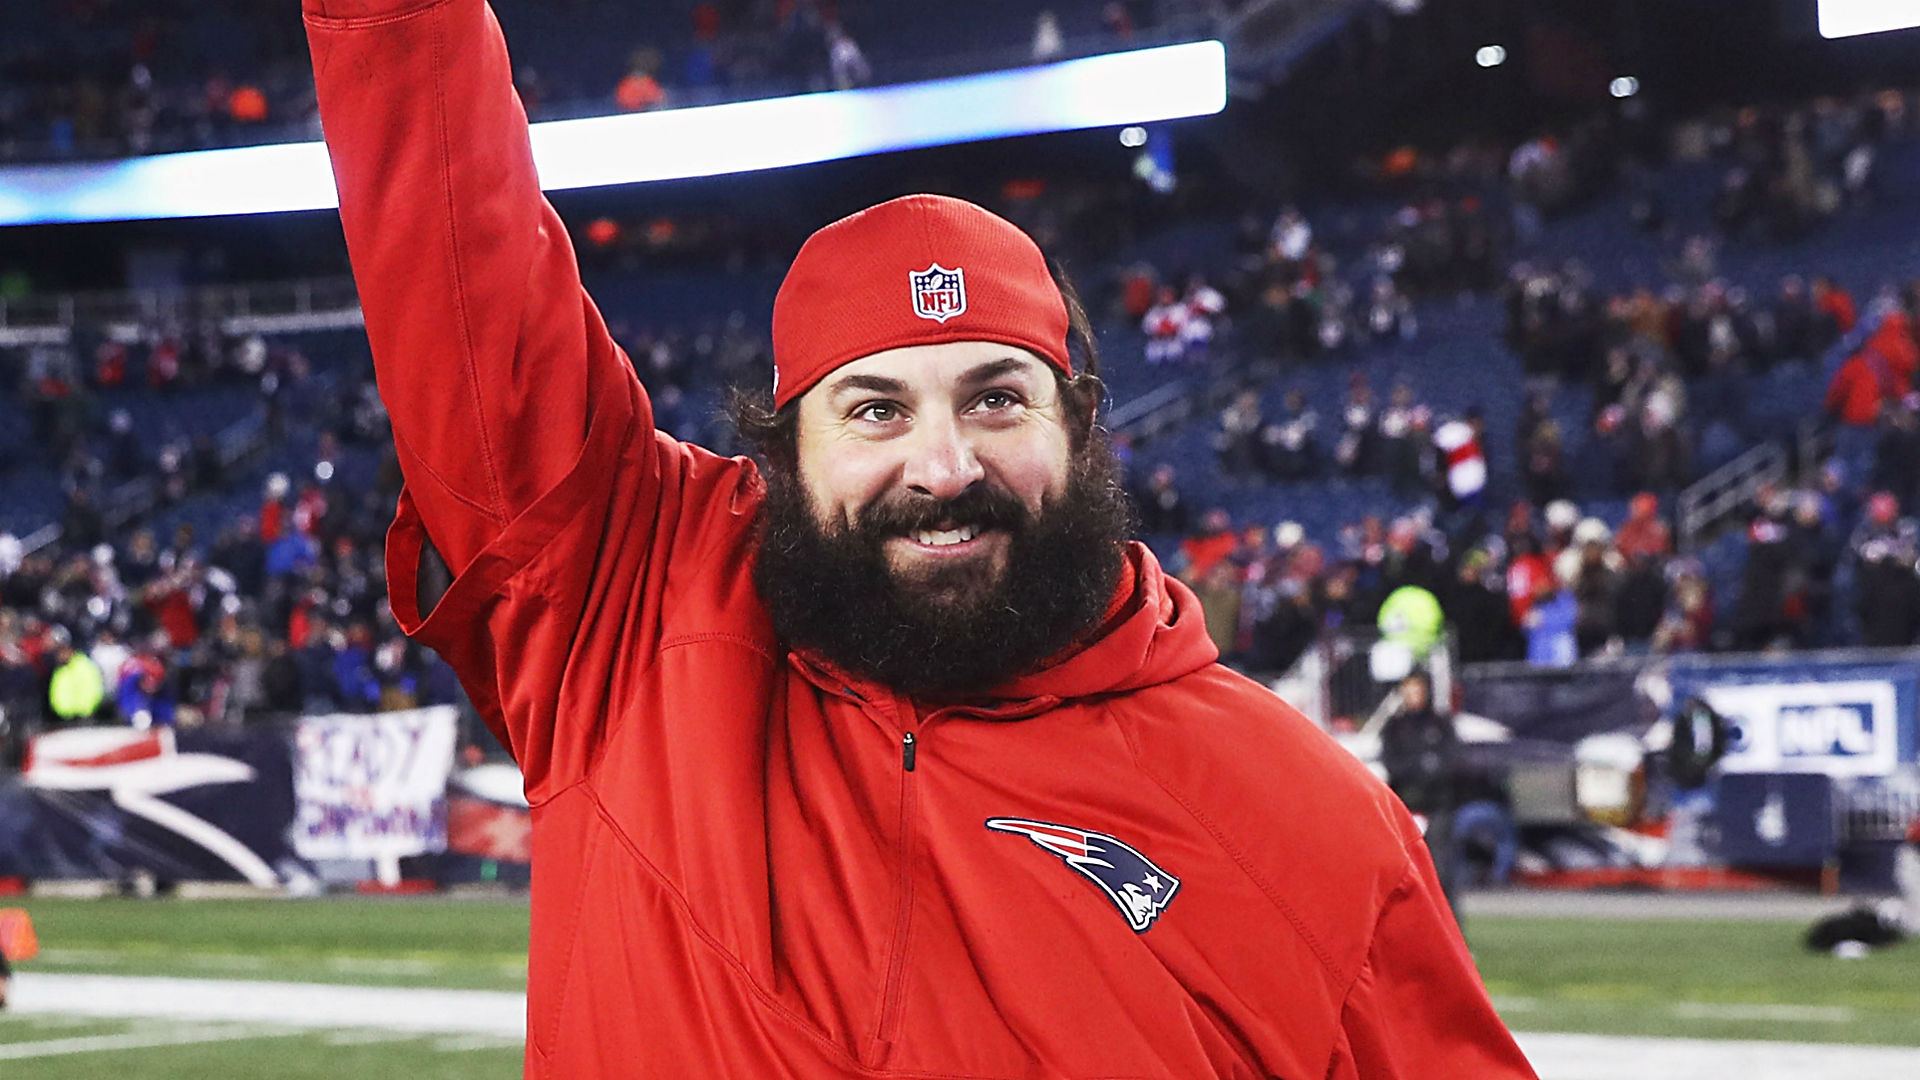 ebcefd73 Lions officially hire Matt Patricia after Pats SB loss   Sporting News